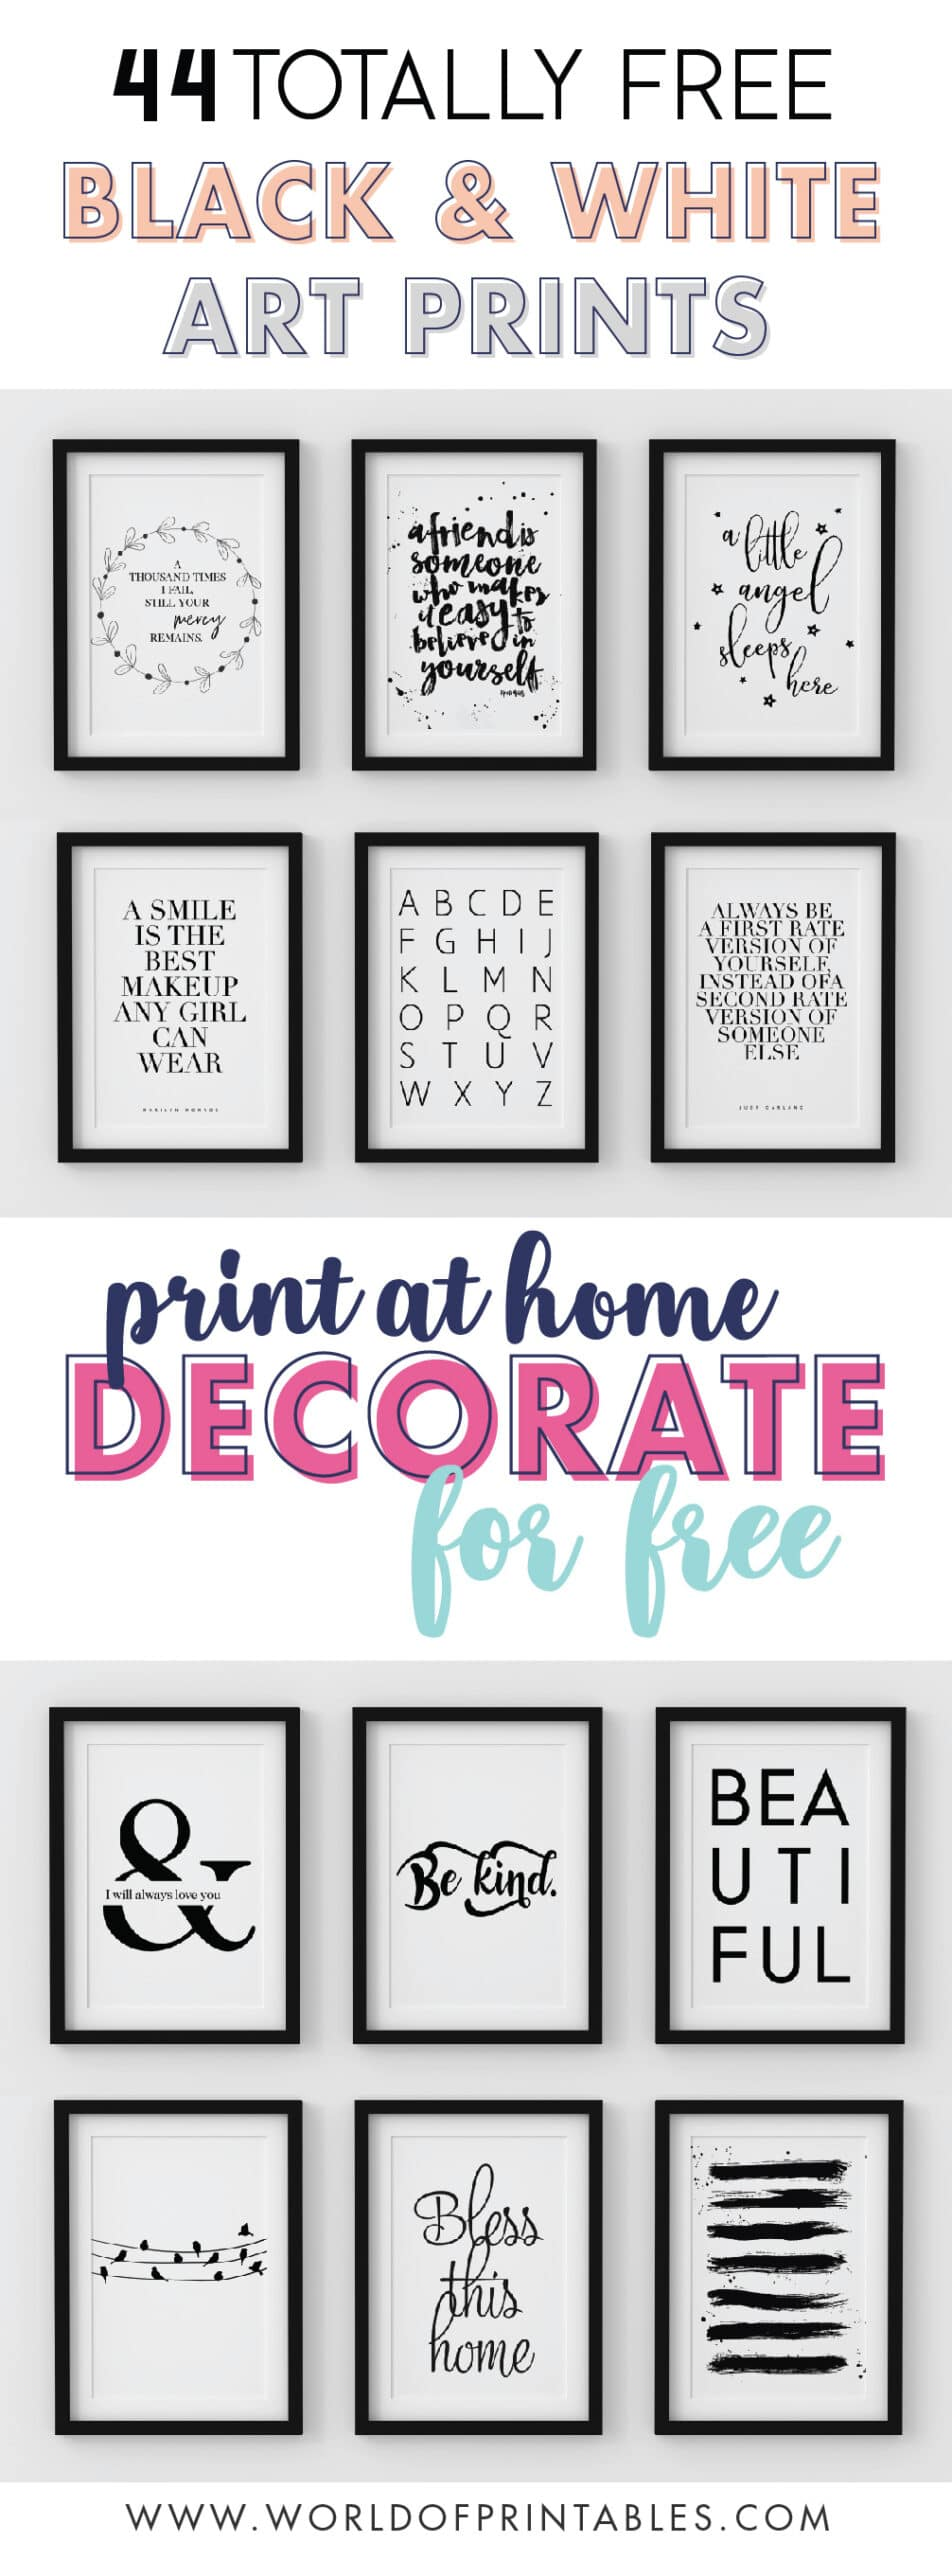 44-totally-free-black-and-white-wall-art-prints-for-home-decor-ideas